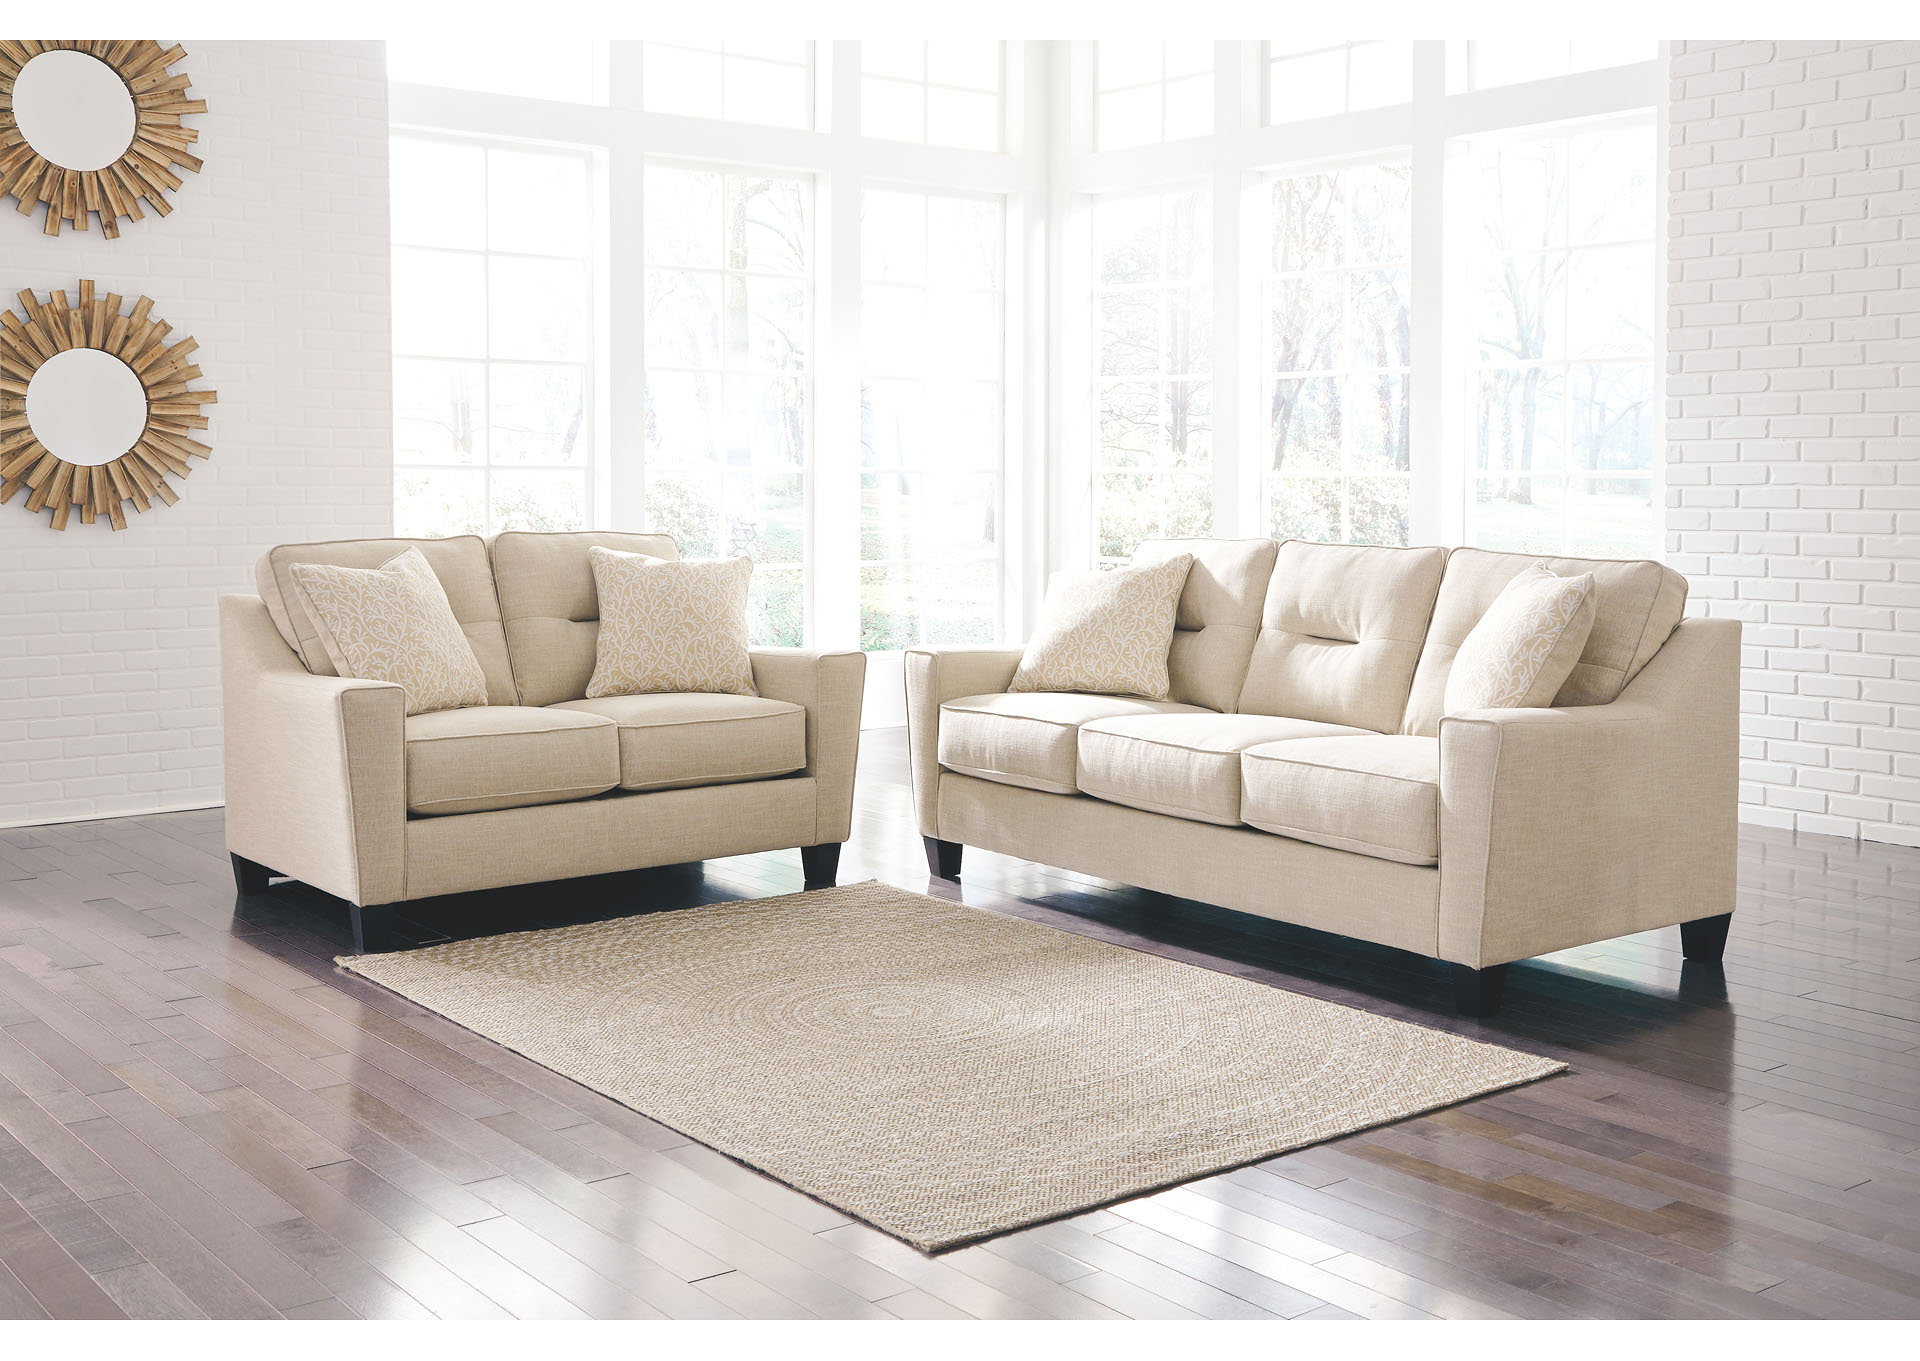 Jesup Furniture Outlet Forsan Nuvella Sand Sofa and Loveseat